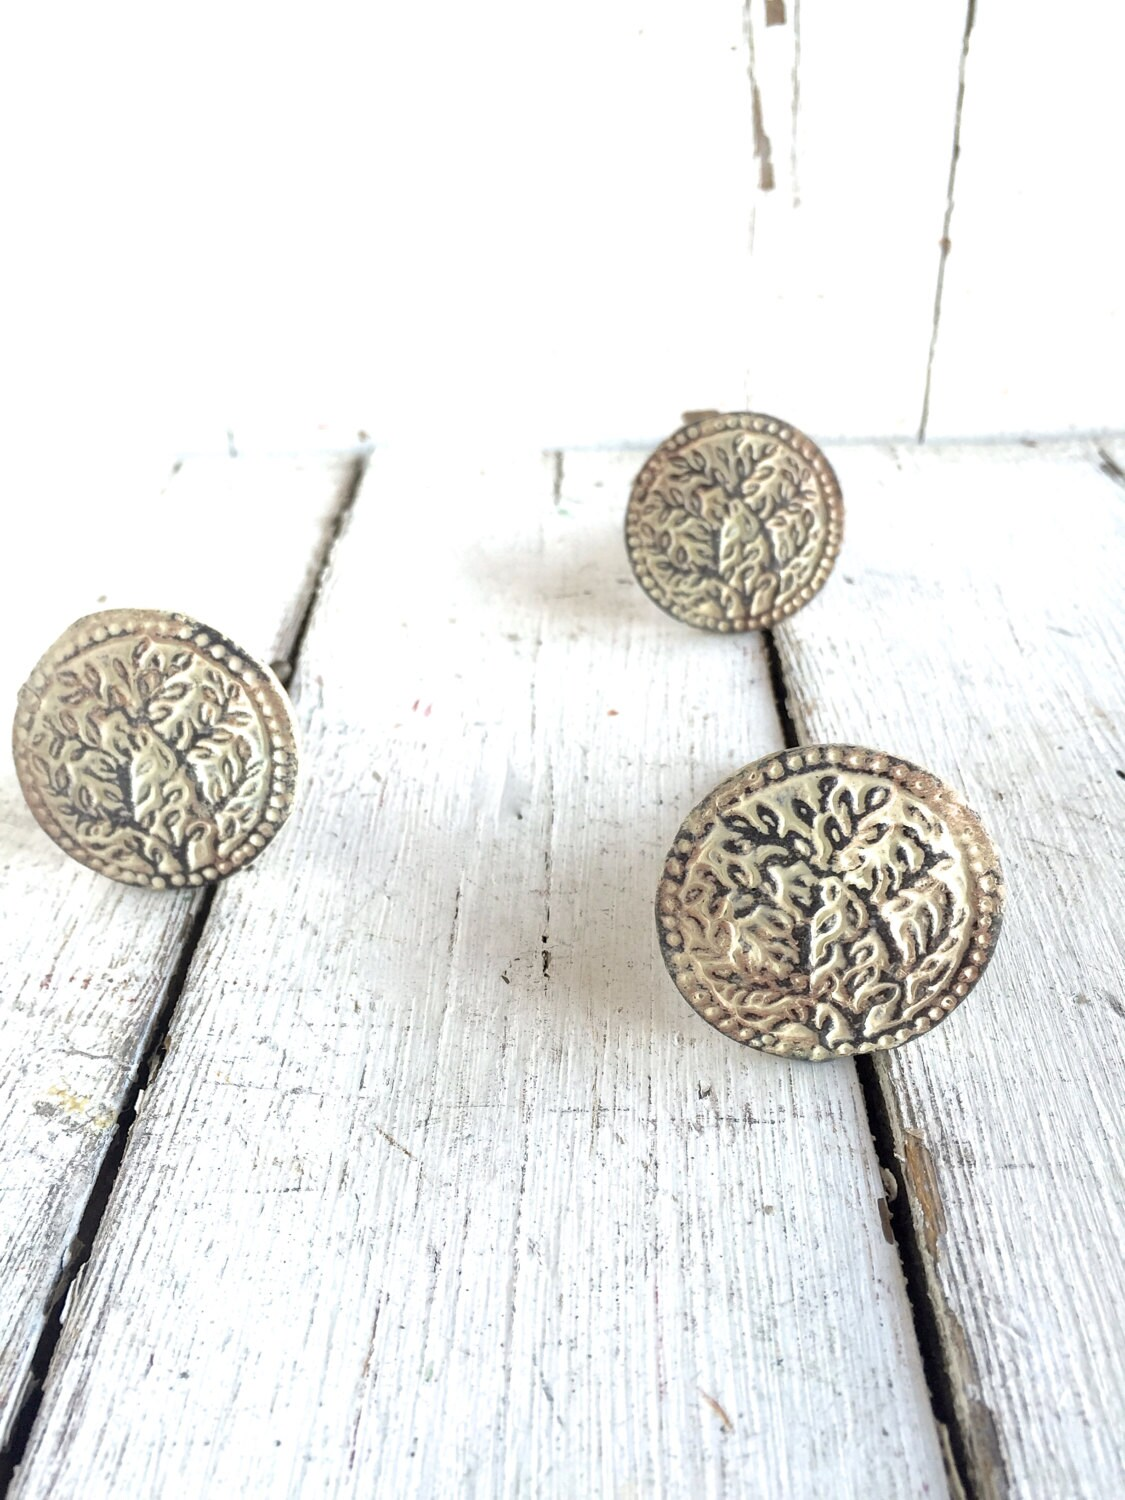 Rustic Knobs, Drawer Knobs, Cabinet Knobs, Dresser Knobs. Led Christmas Decorations. Shutter Decor. 8 Piece Dining Room Set. Coral Color Decor. Fleur De Lis Iron Wall Decor. Daisy Kitchen Decor. Hotel Bed Decoration. Bench Living Room